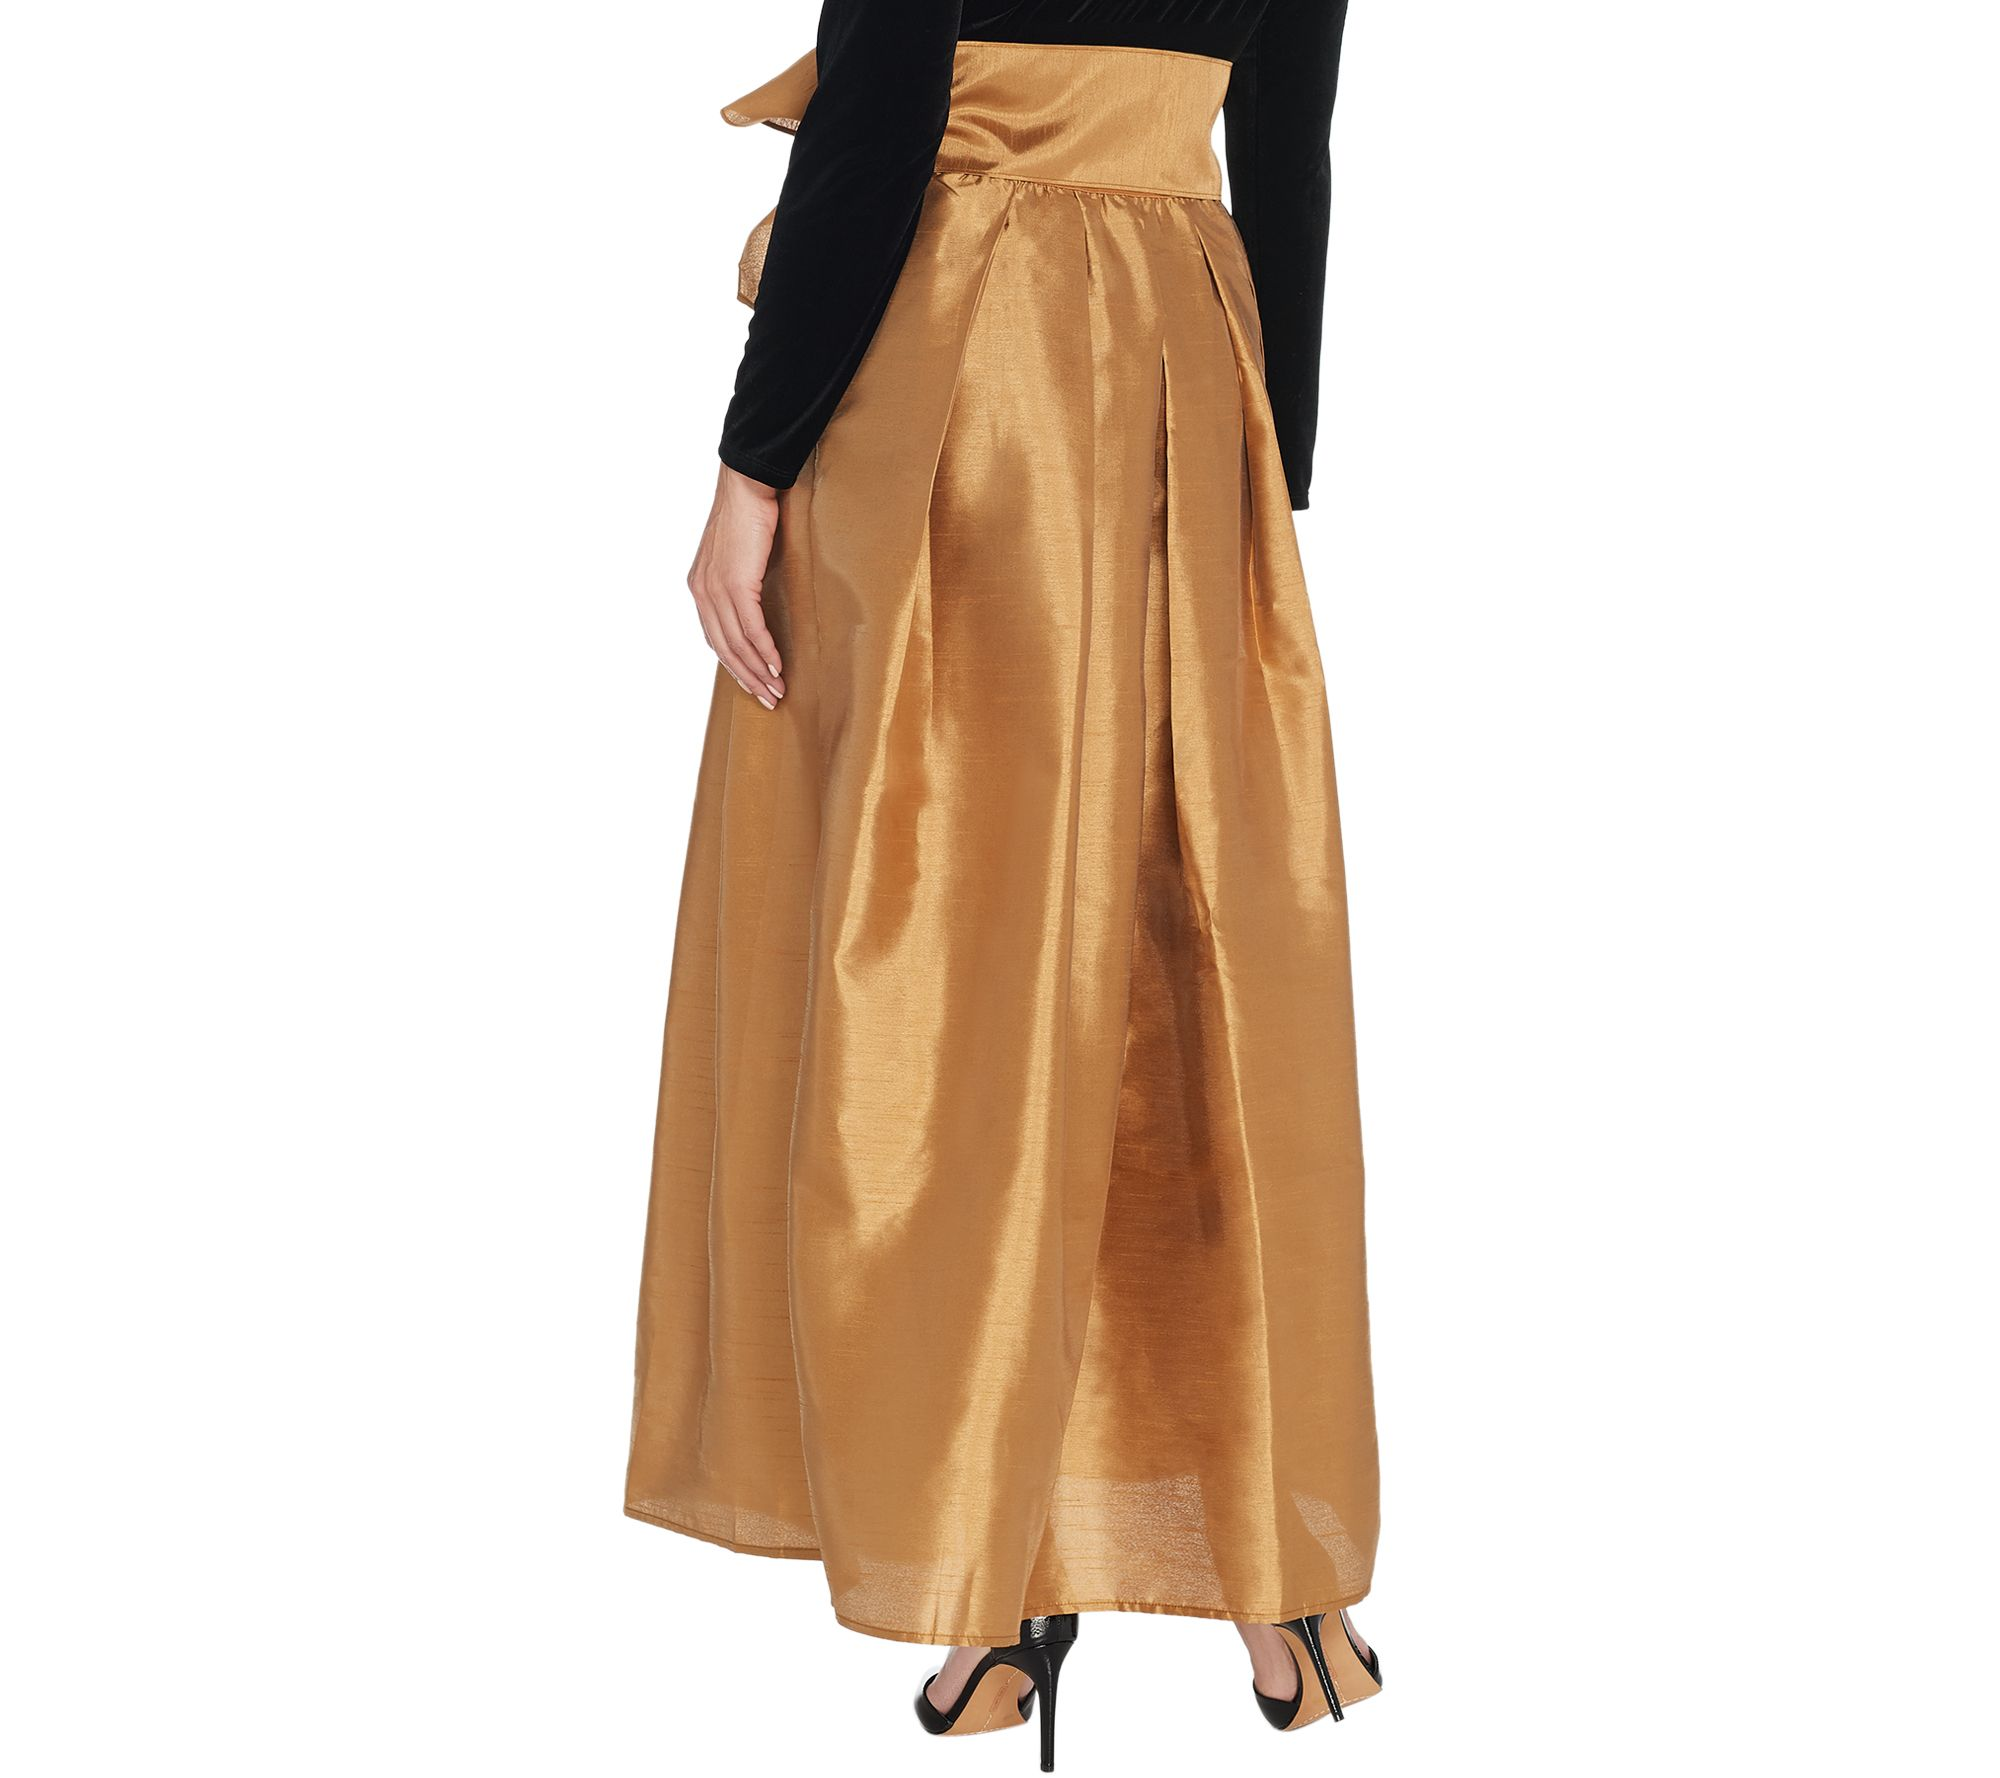 eaf5908d3bfe Joan Rivers Regular Length Faux Dupioni Maxi Skirt - Page 1 — QVC.com